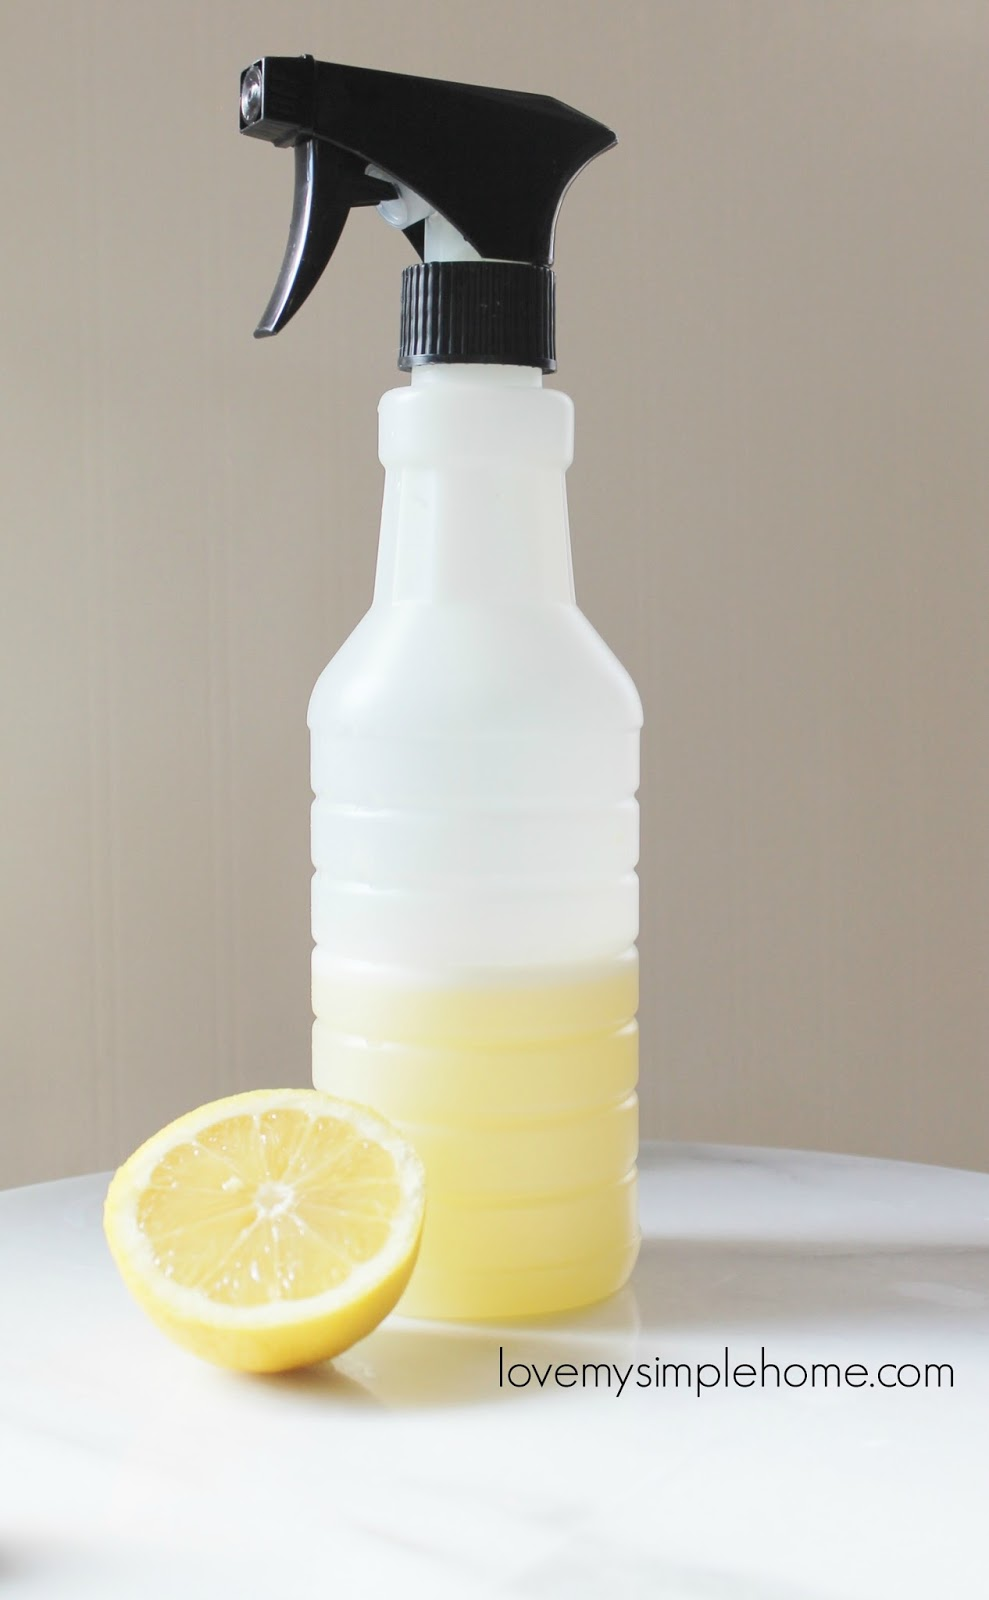 I Use It To Clean My Laminate Kitchen Counter, Kitchen, And Bathroom Sinks,  And The Glass Shelves In My Refrigerator. This Natural Cleaner Is Also Good  For ...